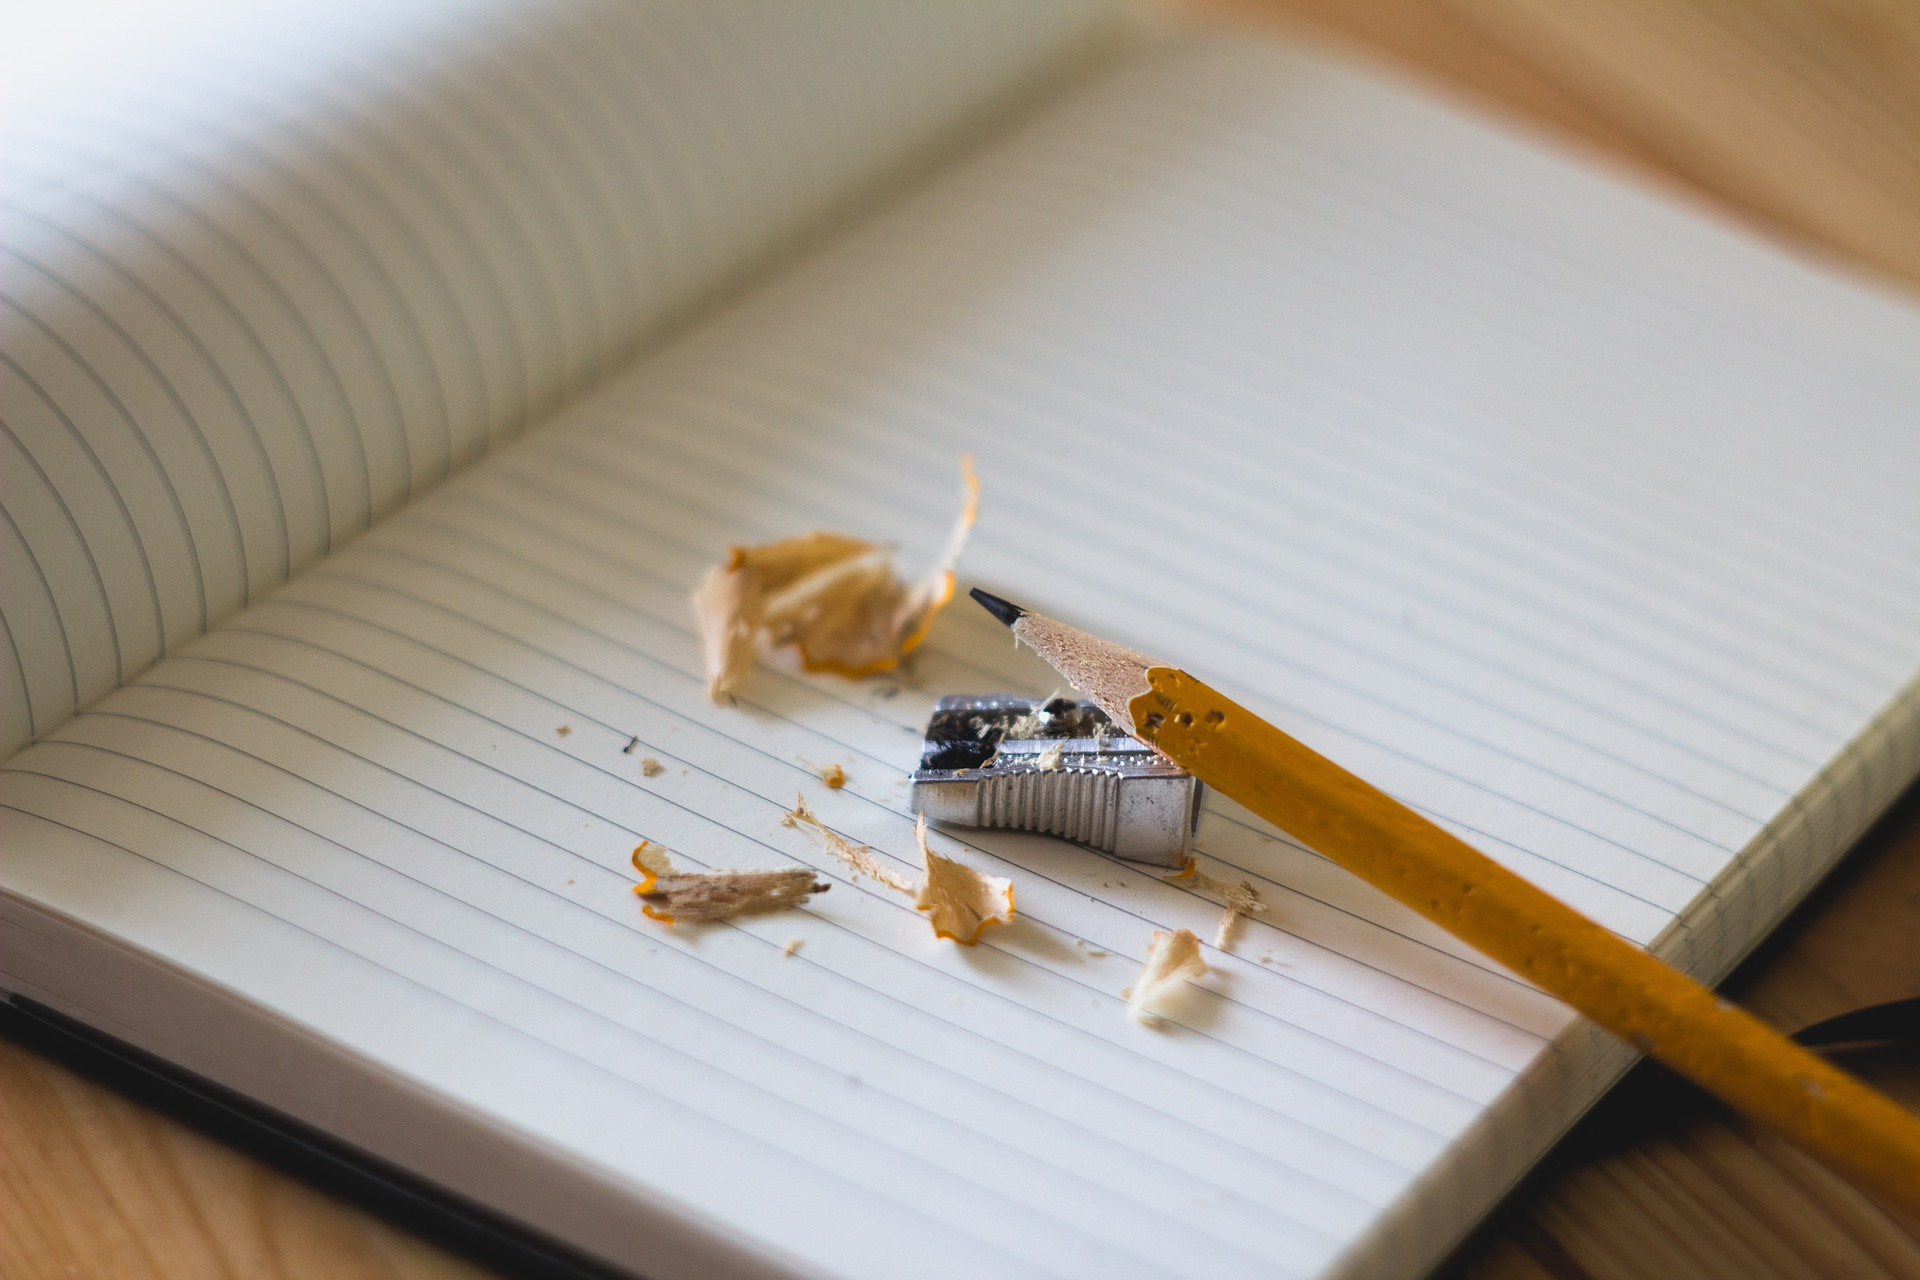 back to school budgeting for school